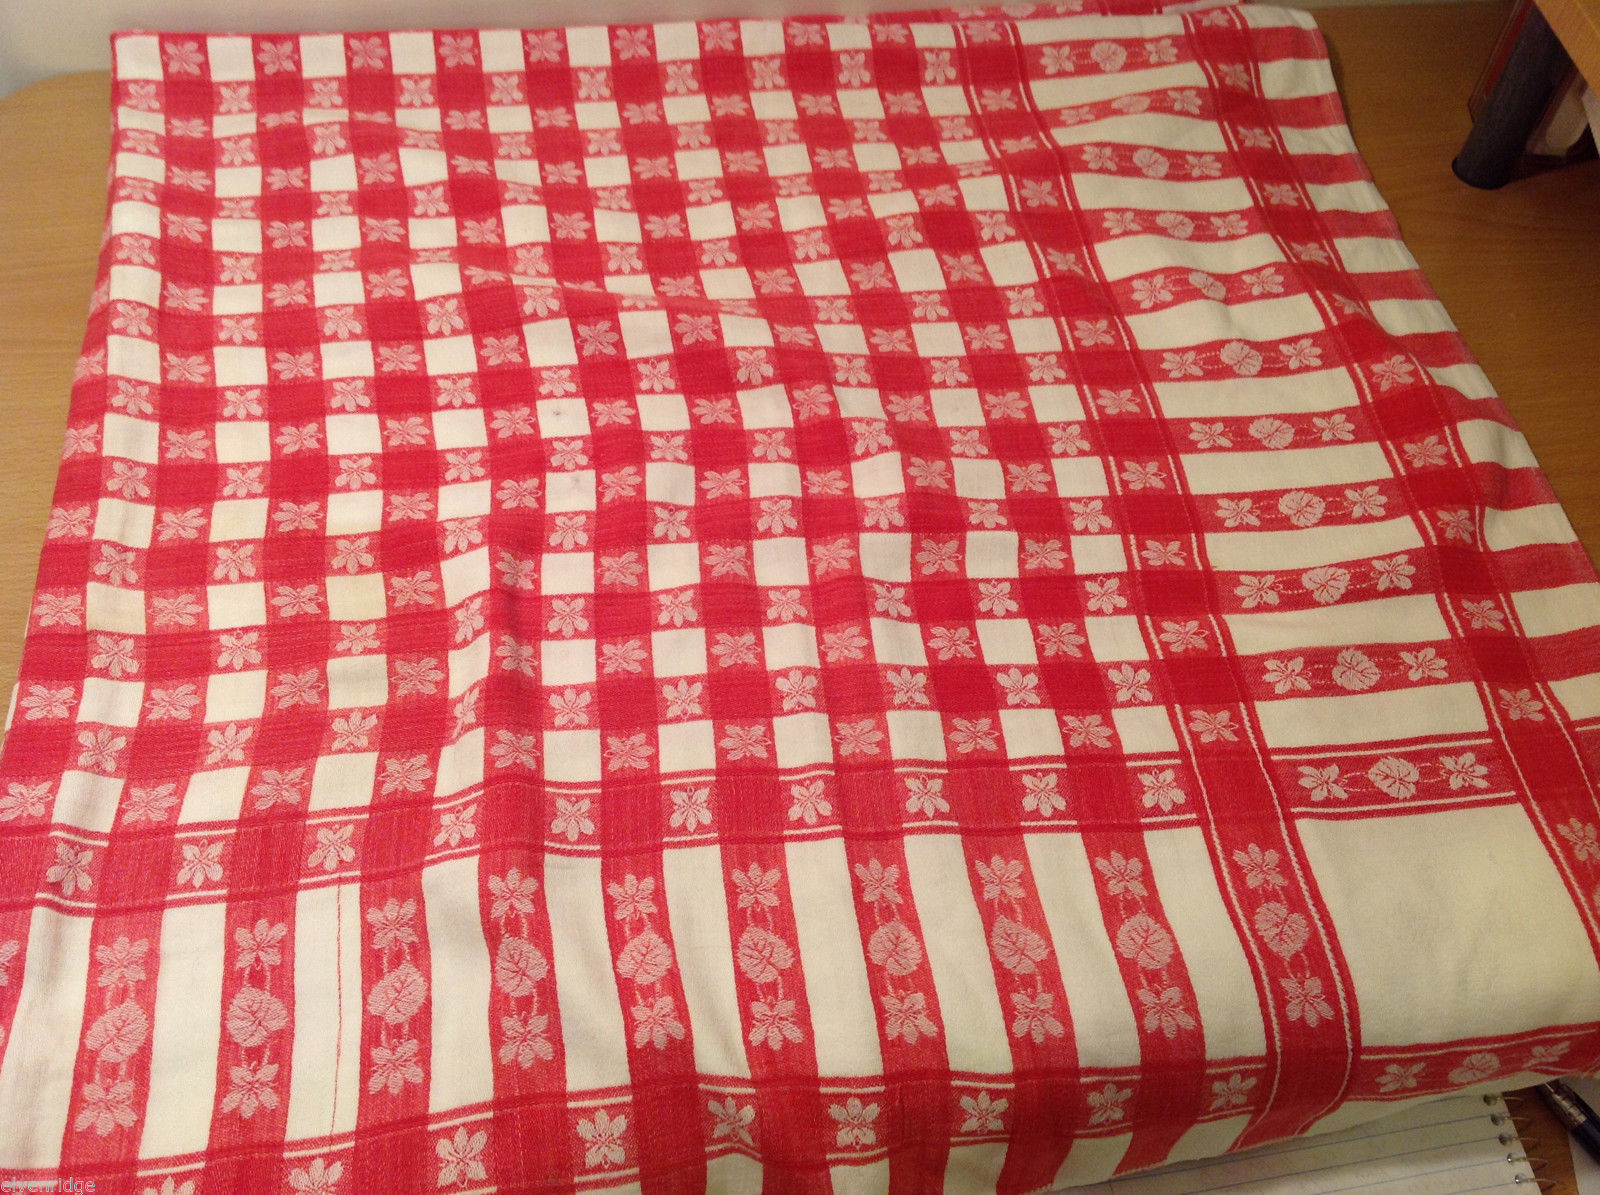 Vintage Old Fashion Plaid Fabric Red White Reversible Table Cloth for Reuse